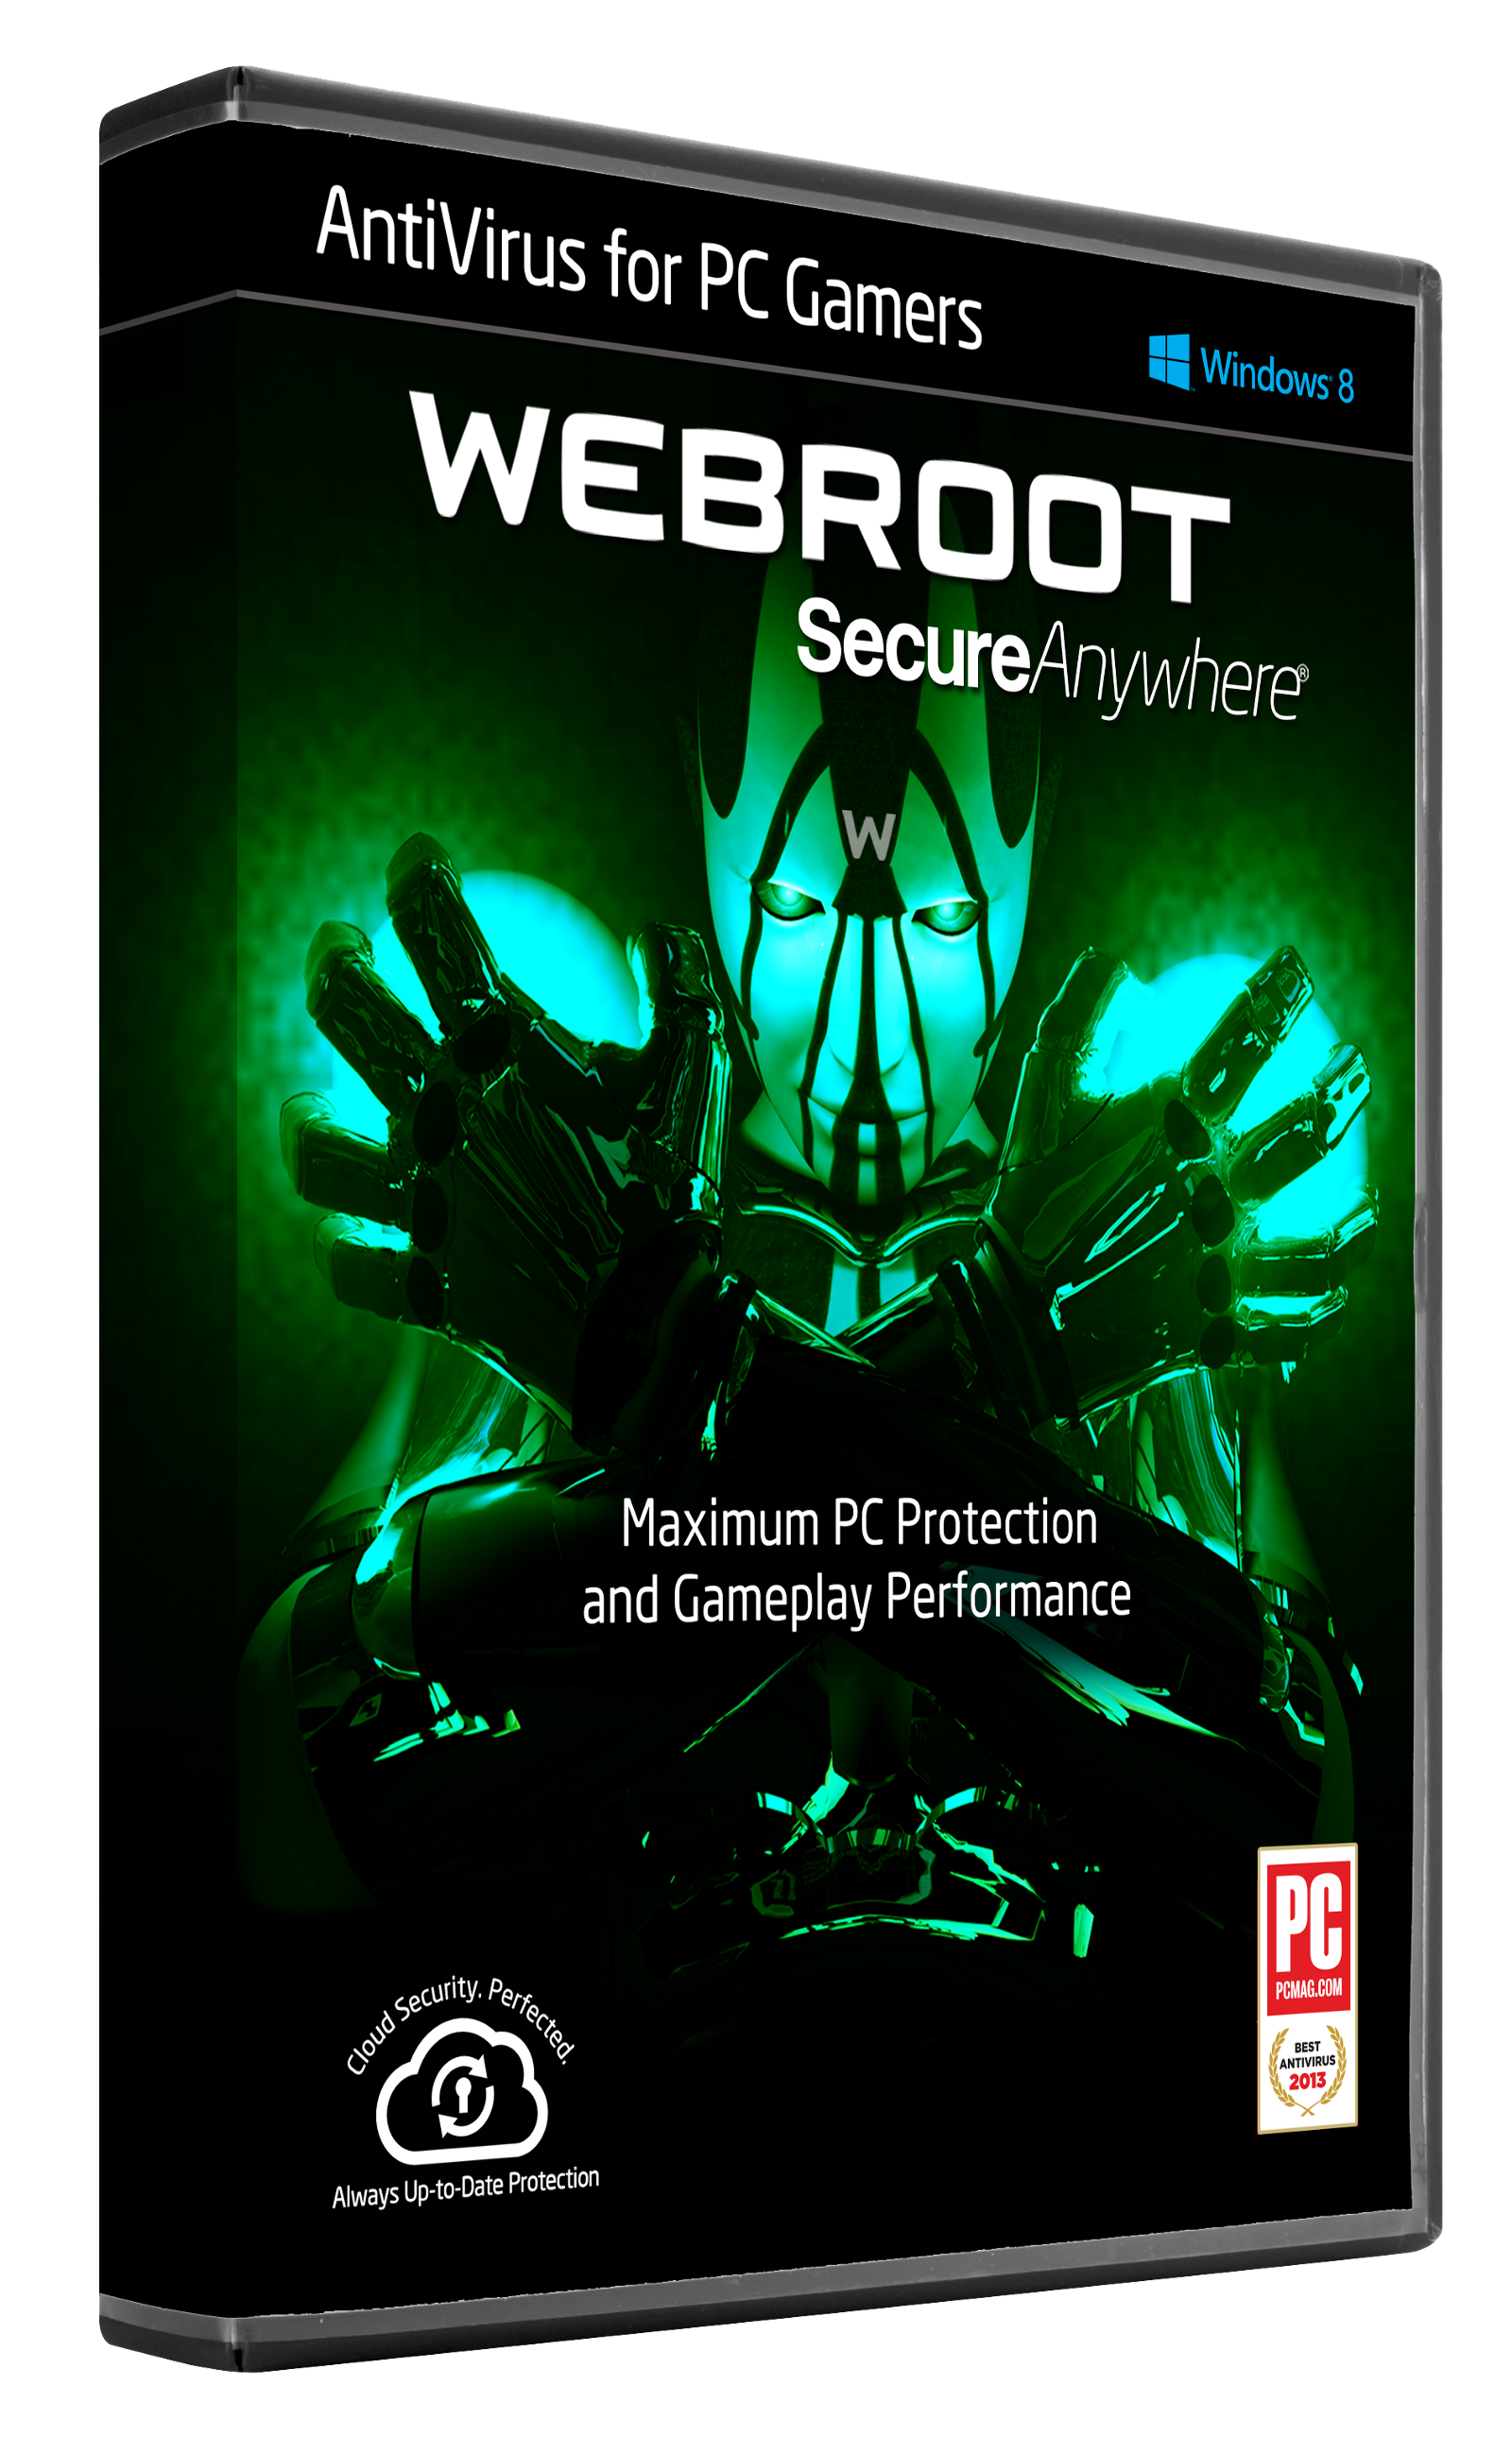 Webroot antivirus protection and internet security for pc gamers.